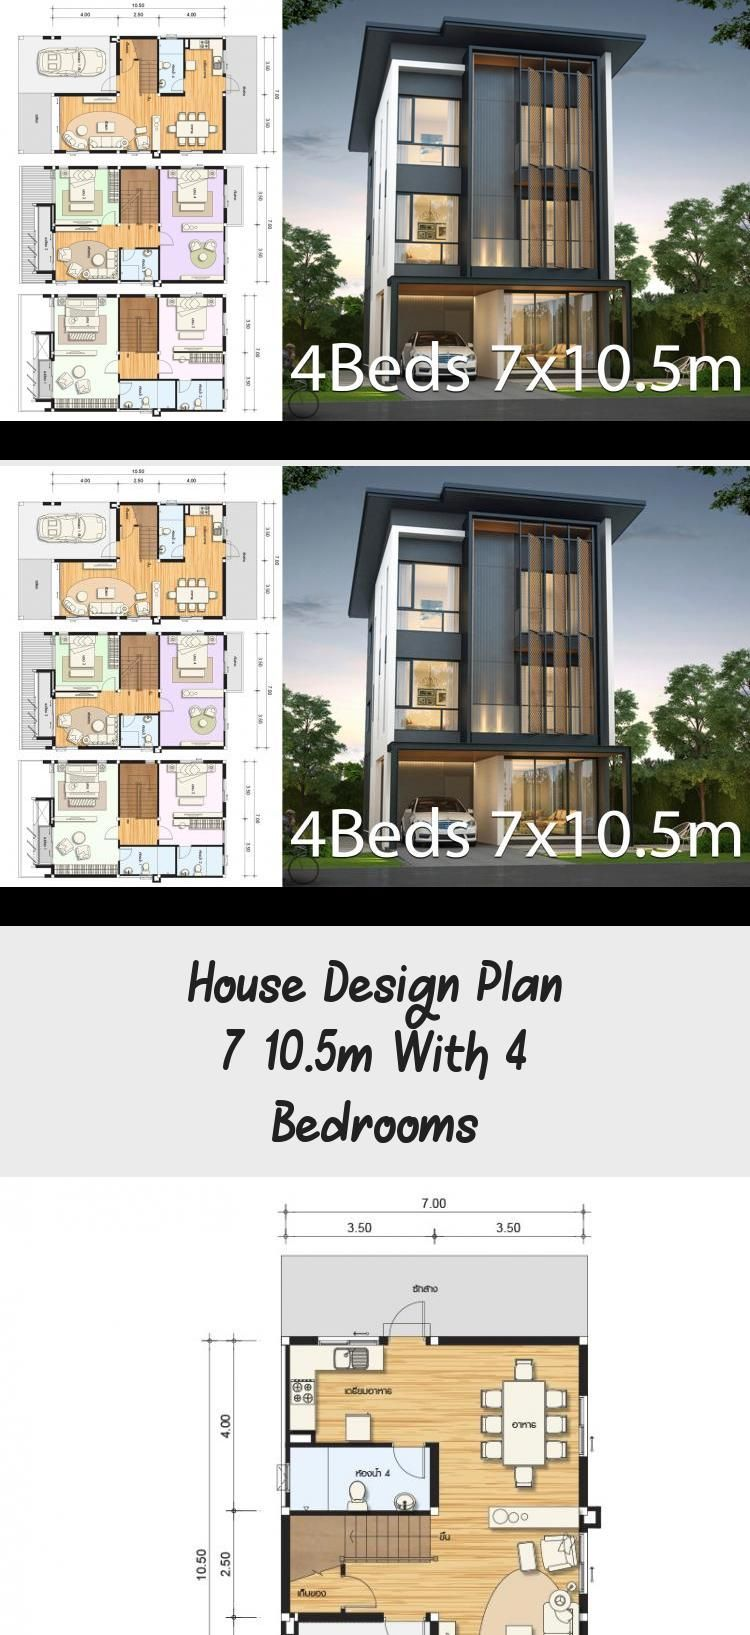 House Design Plan 7x10 5m With 4 Bedrooms Home Design With Plansearch Modernhousedesign Indianhousedesign Classichousedesign Hous In 2020 Home Design Plans Classic House Design Indian Home Design